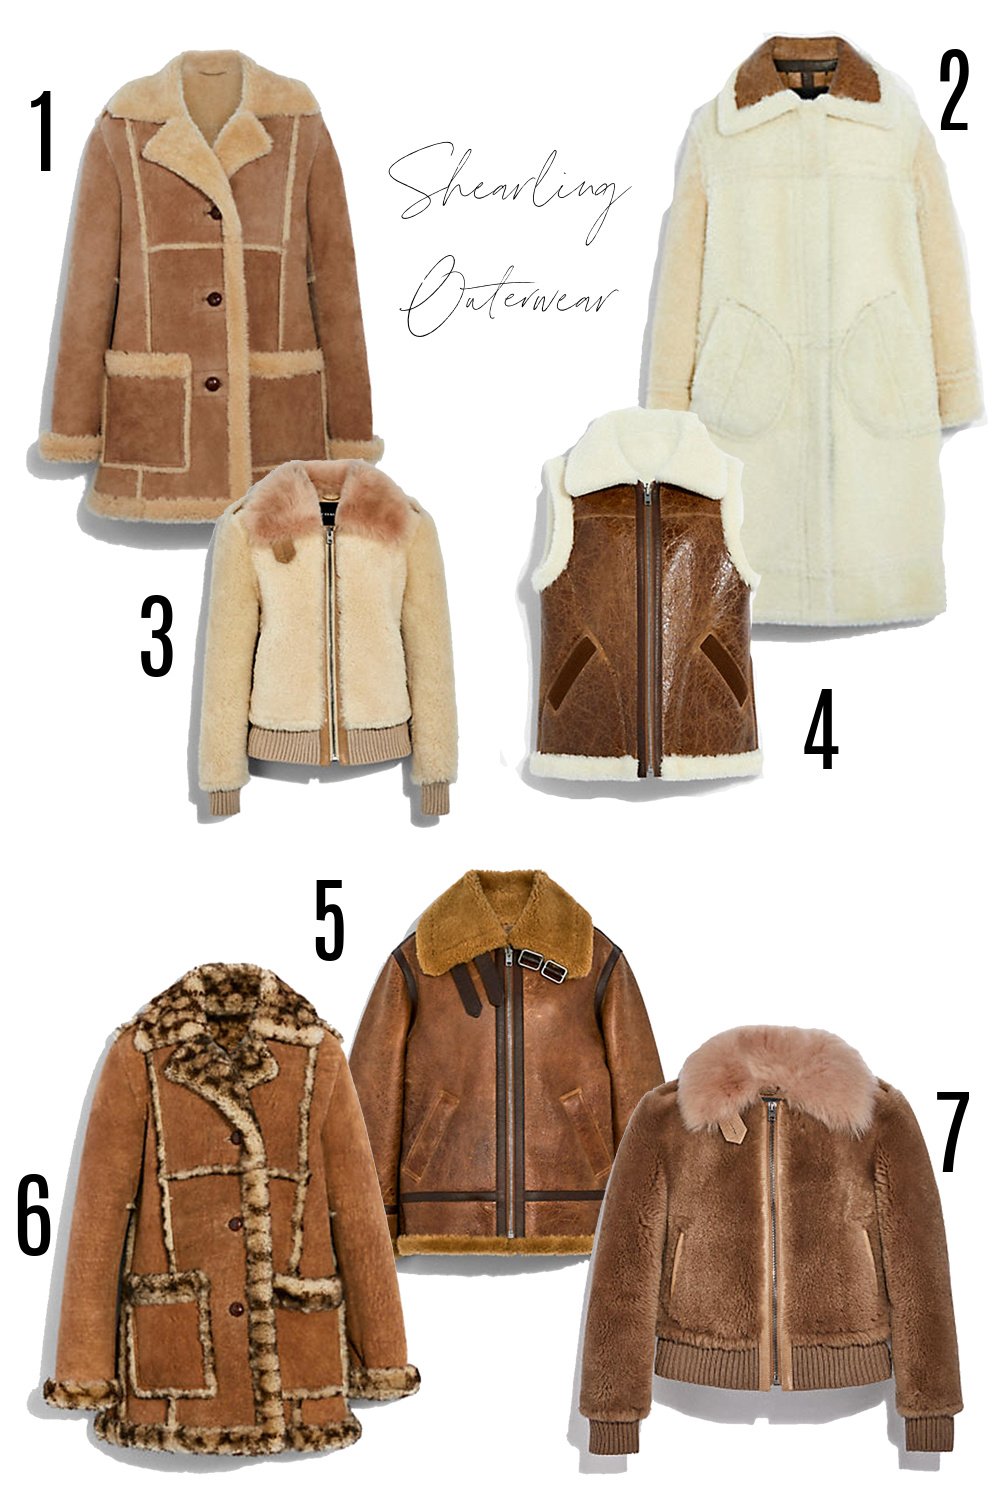 COACH Fall 2021 Collection I Shearling Coats and Outerwear #fashionstyle #ootdinspo